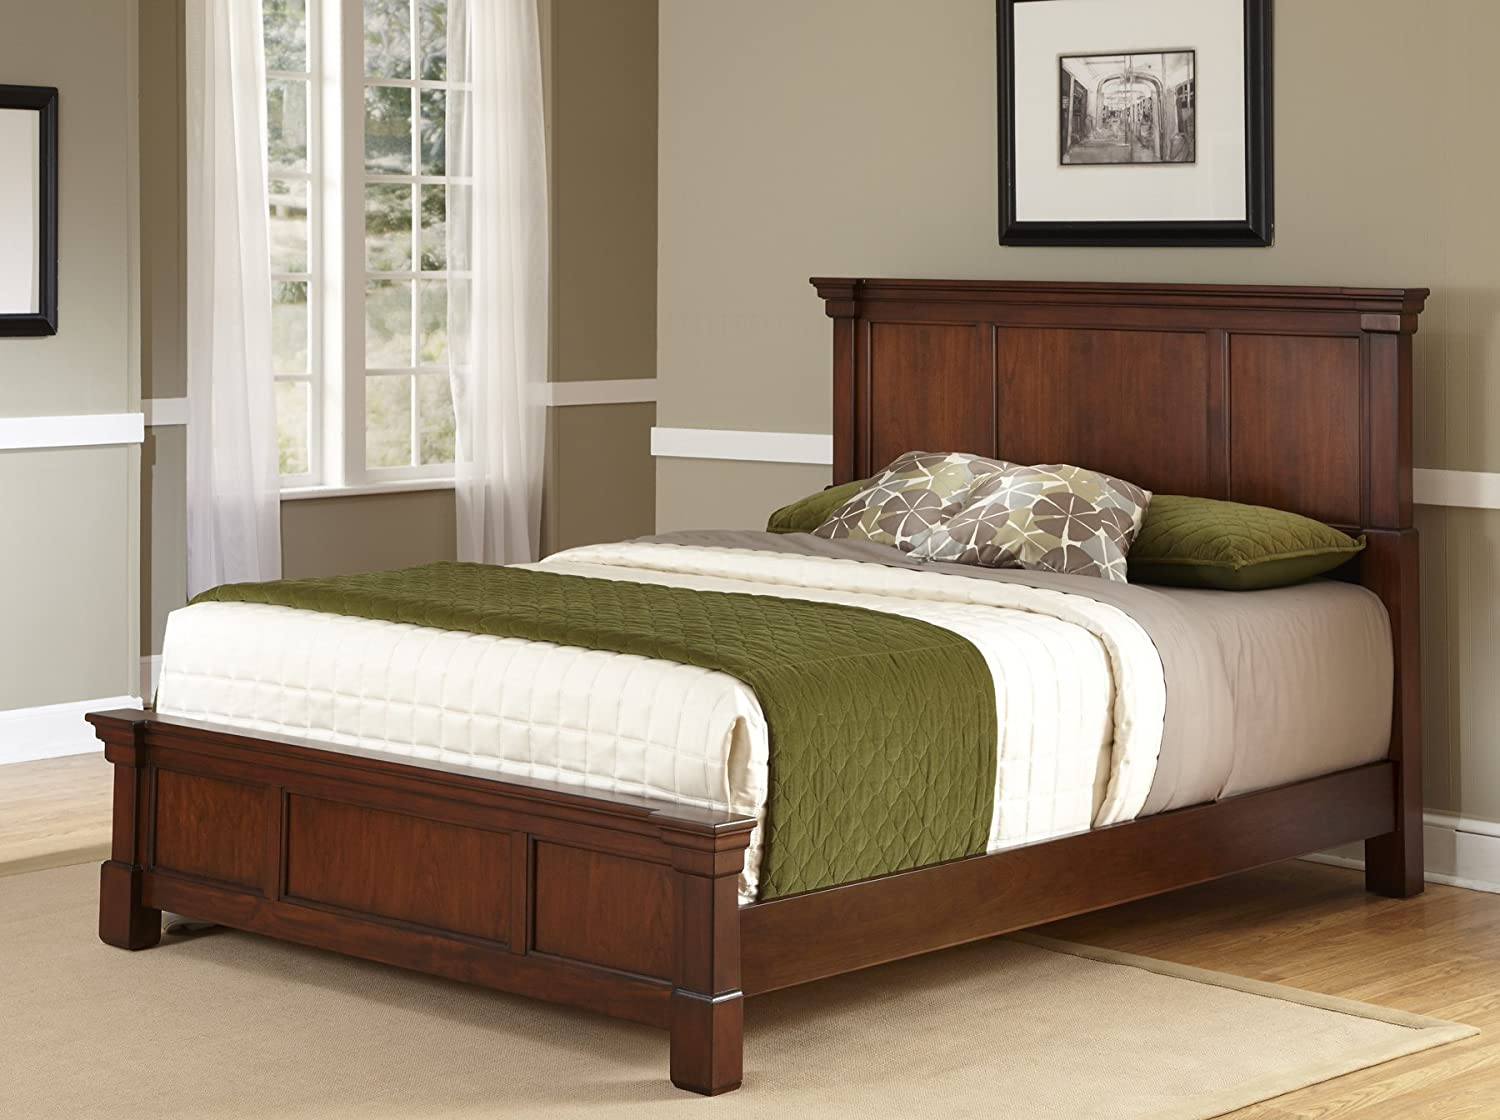 Amazon Com The Aspen Rustic Cherry Queen Bed By Home Styles Furniture Decor